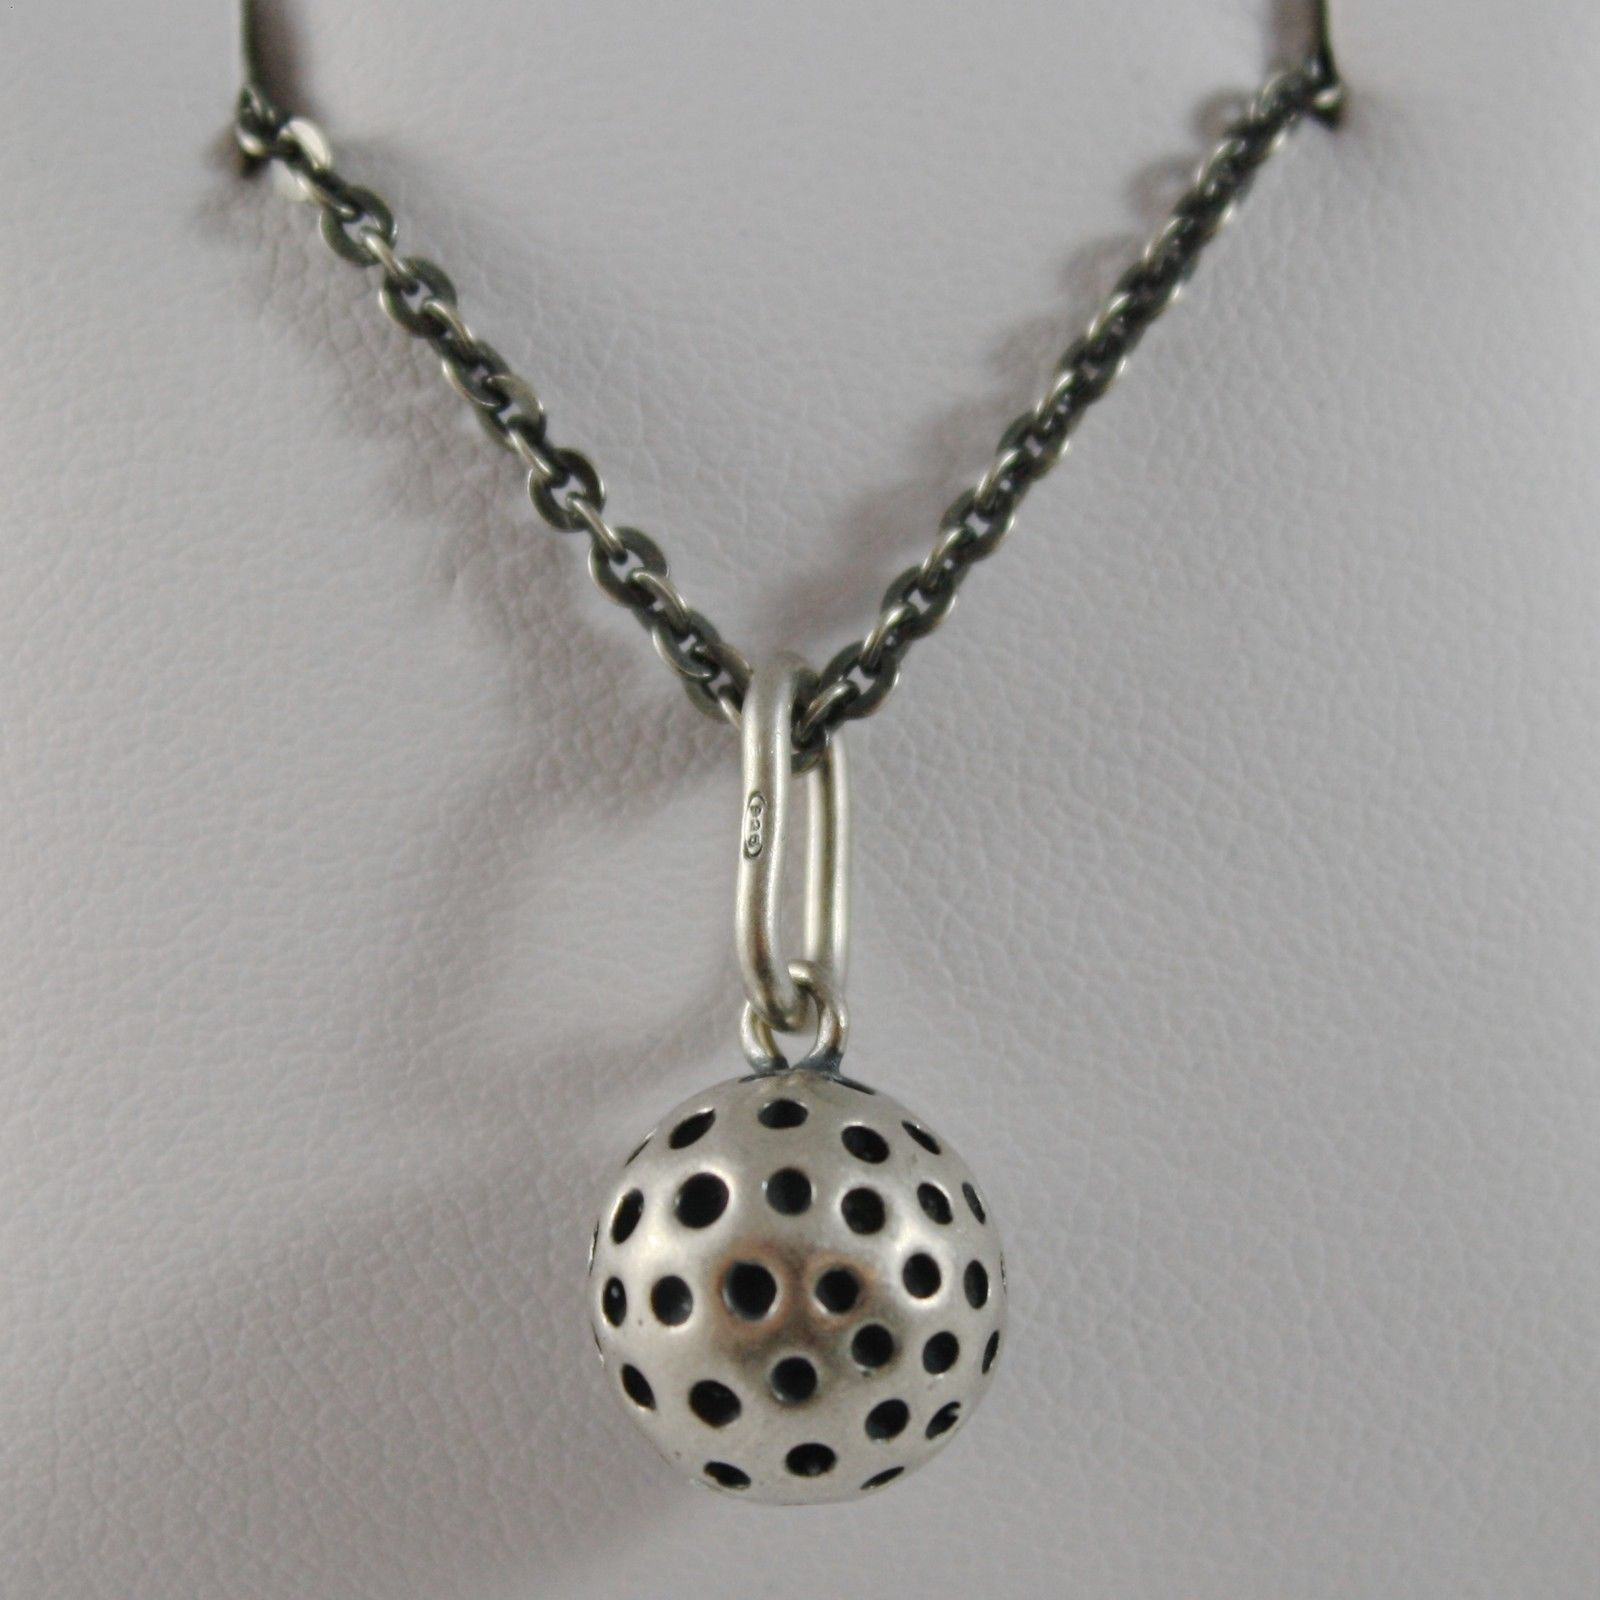 925 STERLING SILVER NECKLACE BURNISHED PENDANT A GOLF BALL GOLF MADE IN ITALY